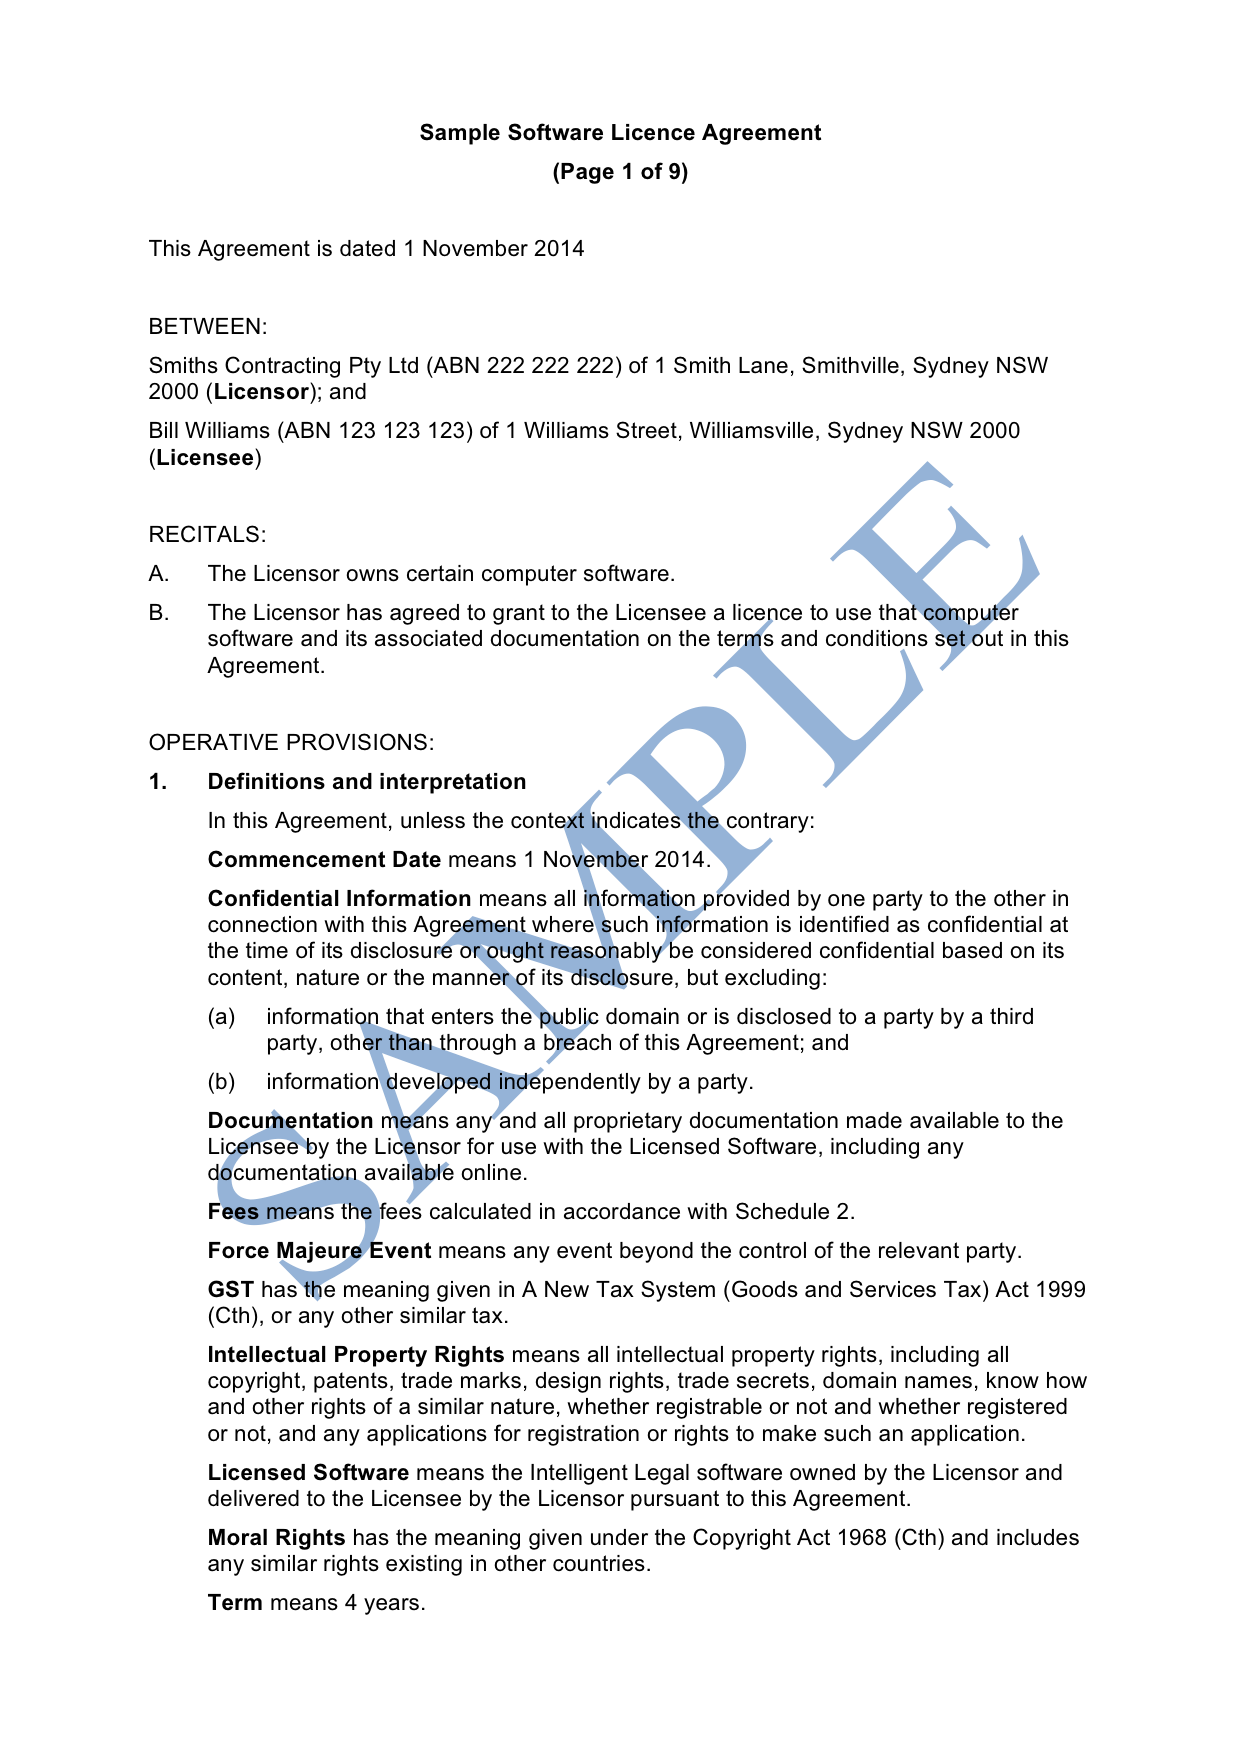 Software License Agreement (Licensee)